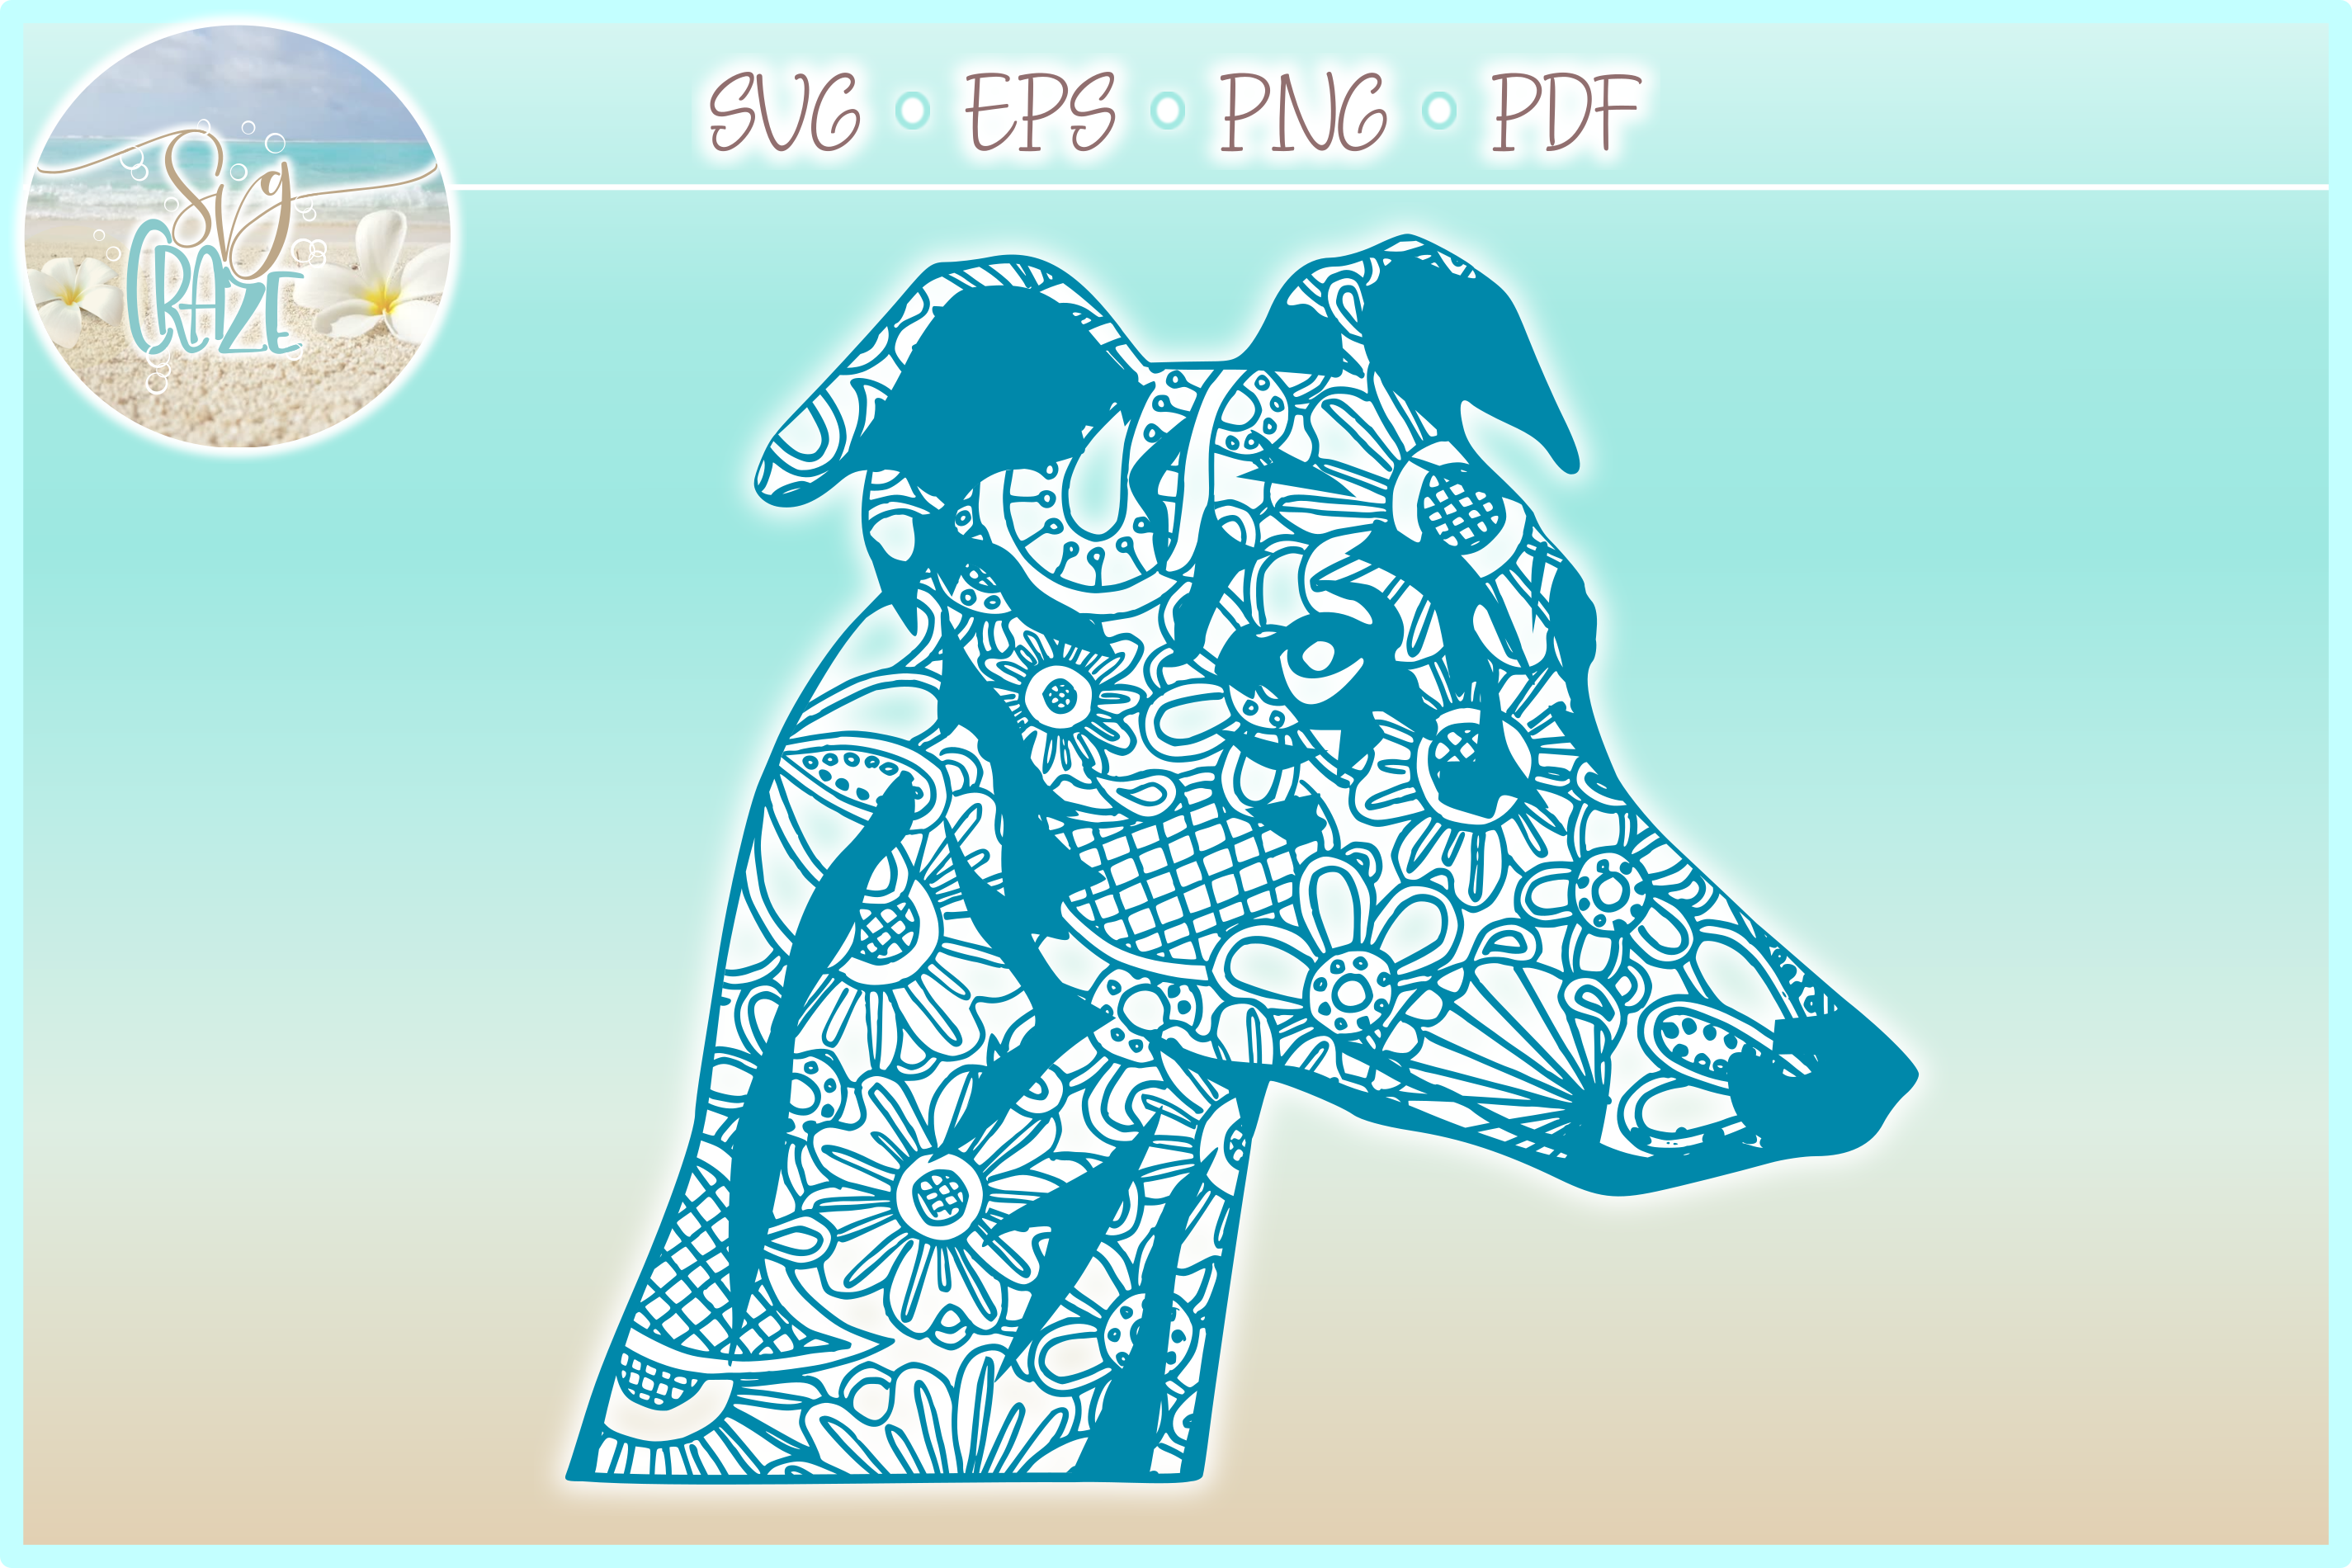 Greyhound Mandala Zentangle Bundle SVG Eps Png PDF example image 5